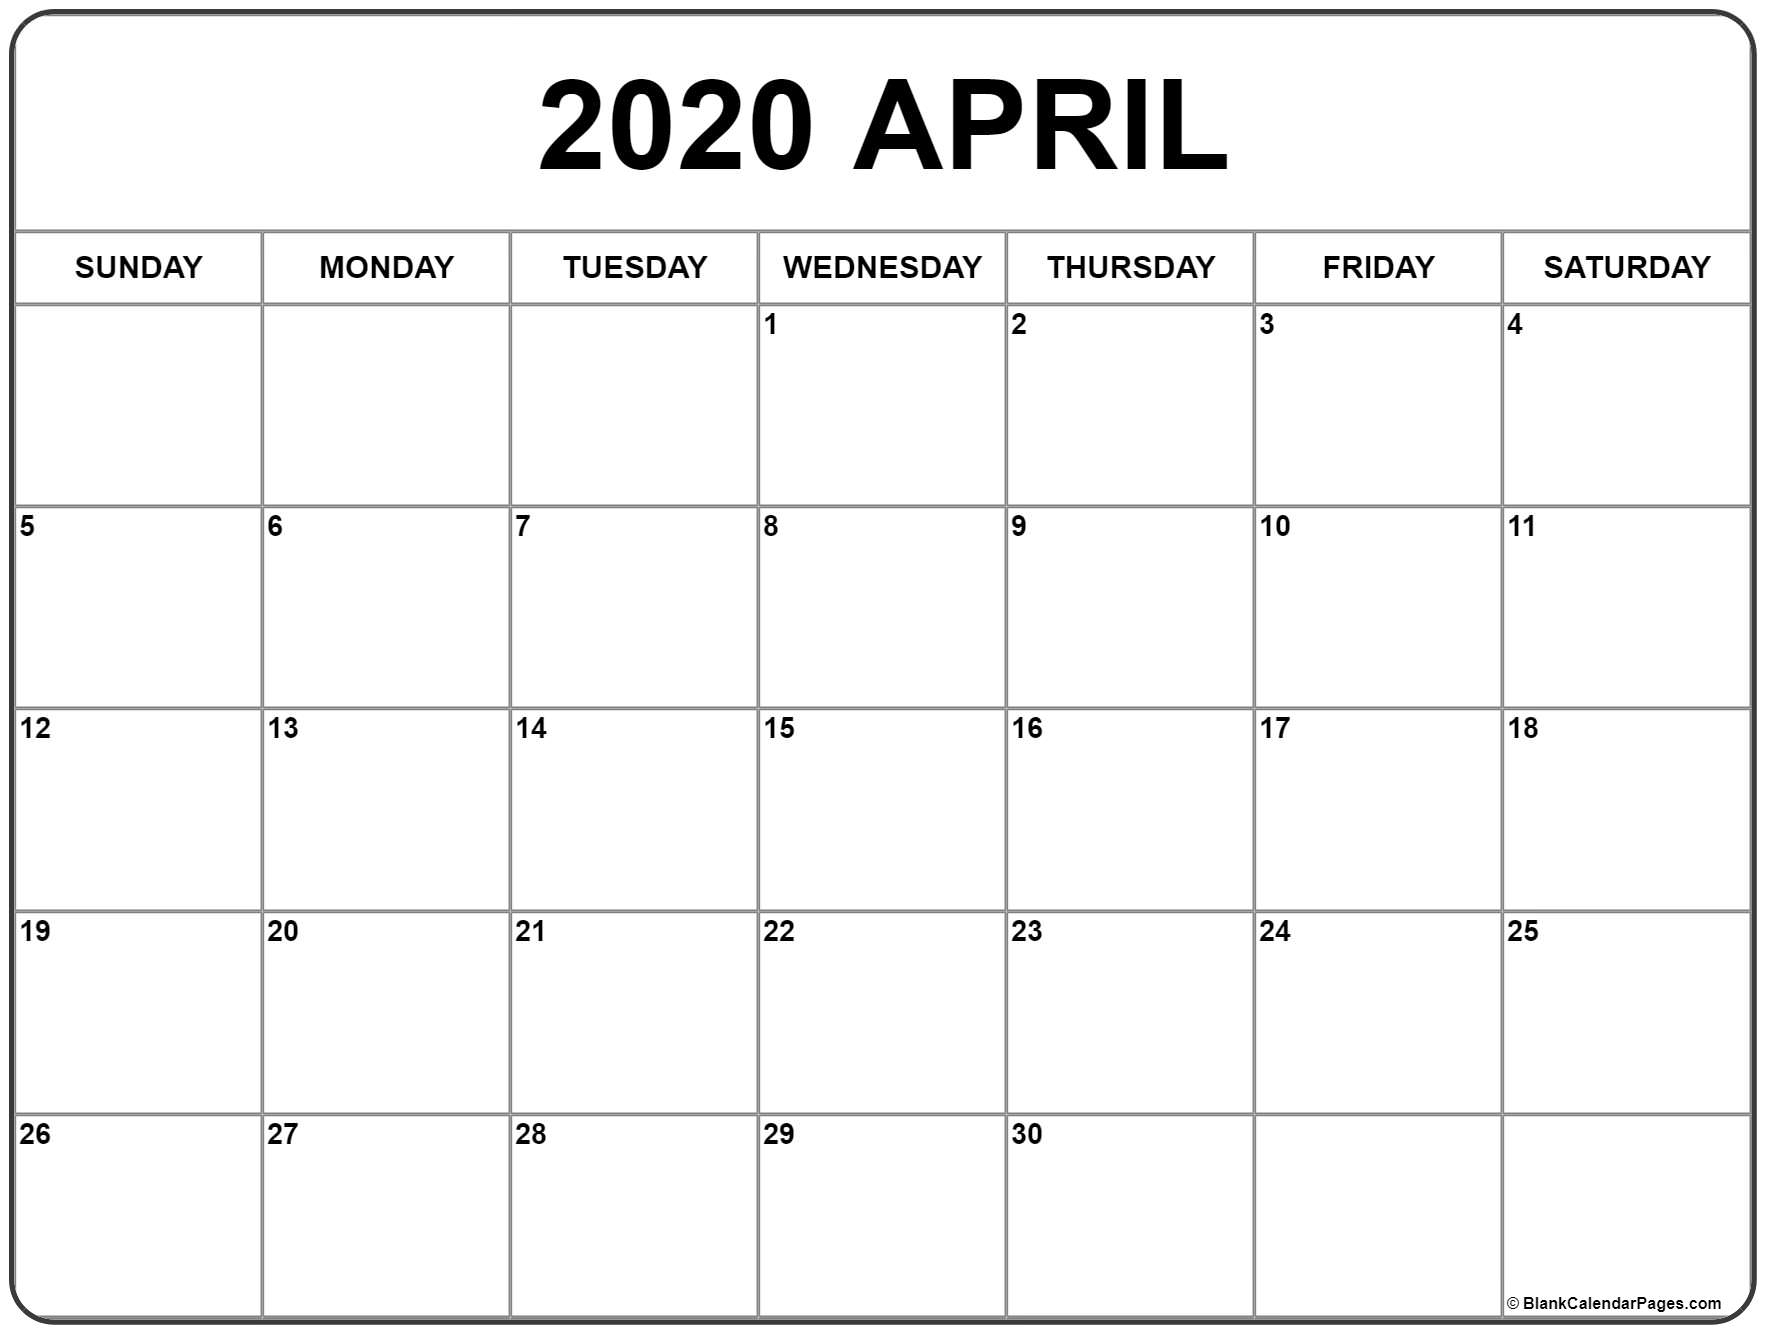 Take Calendars To Print Free With Space To Write